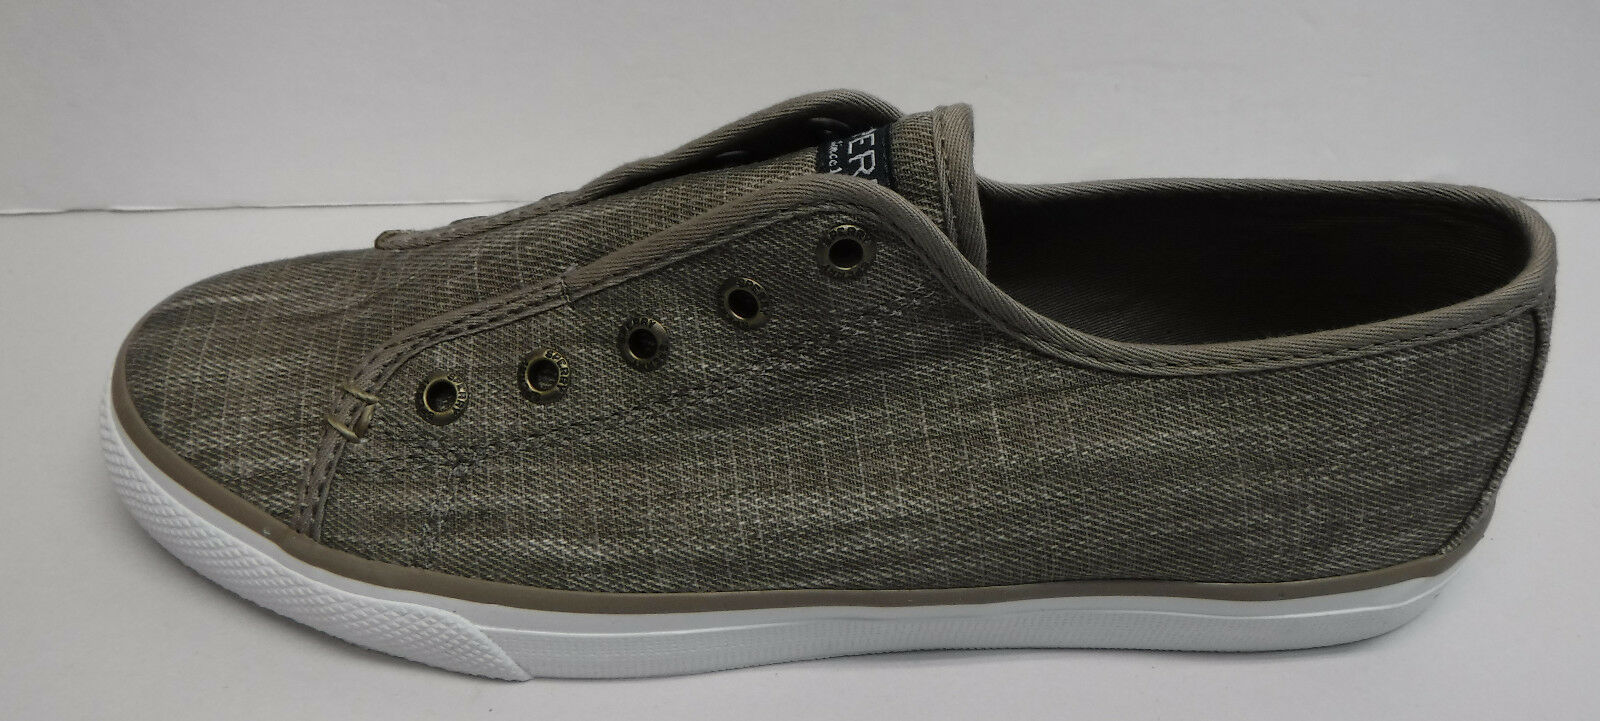 Sperry Size Top Sider Size Sperry 9 Taupe New New New Donna scarpe 702994   179b07